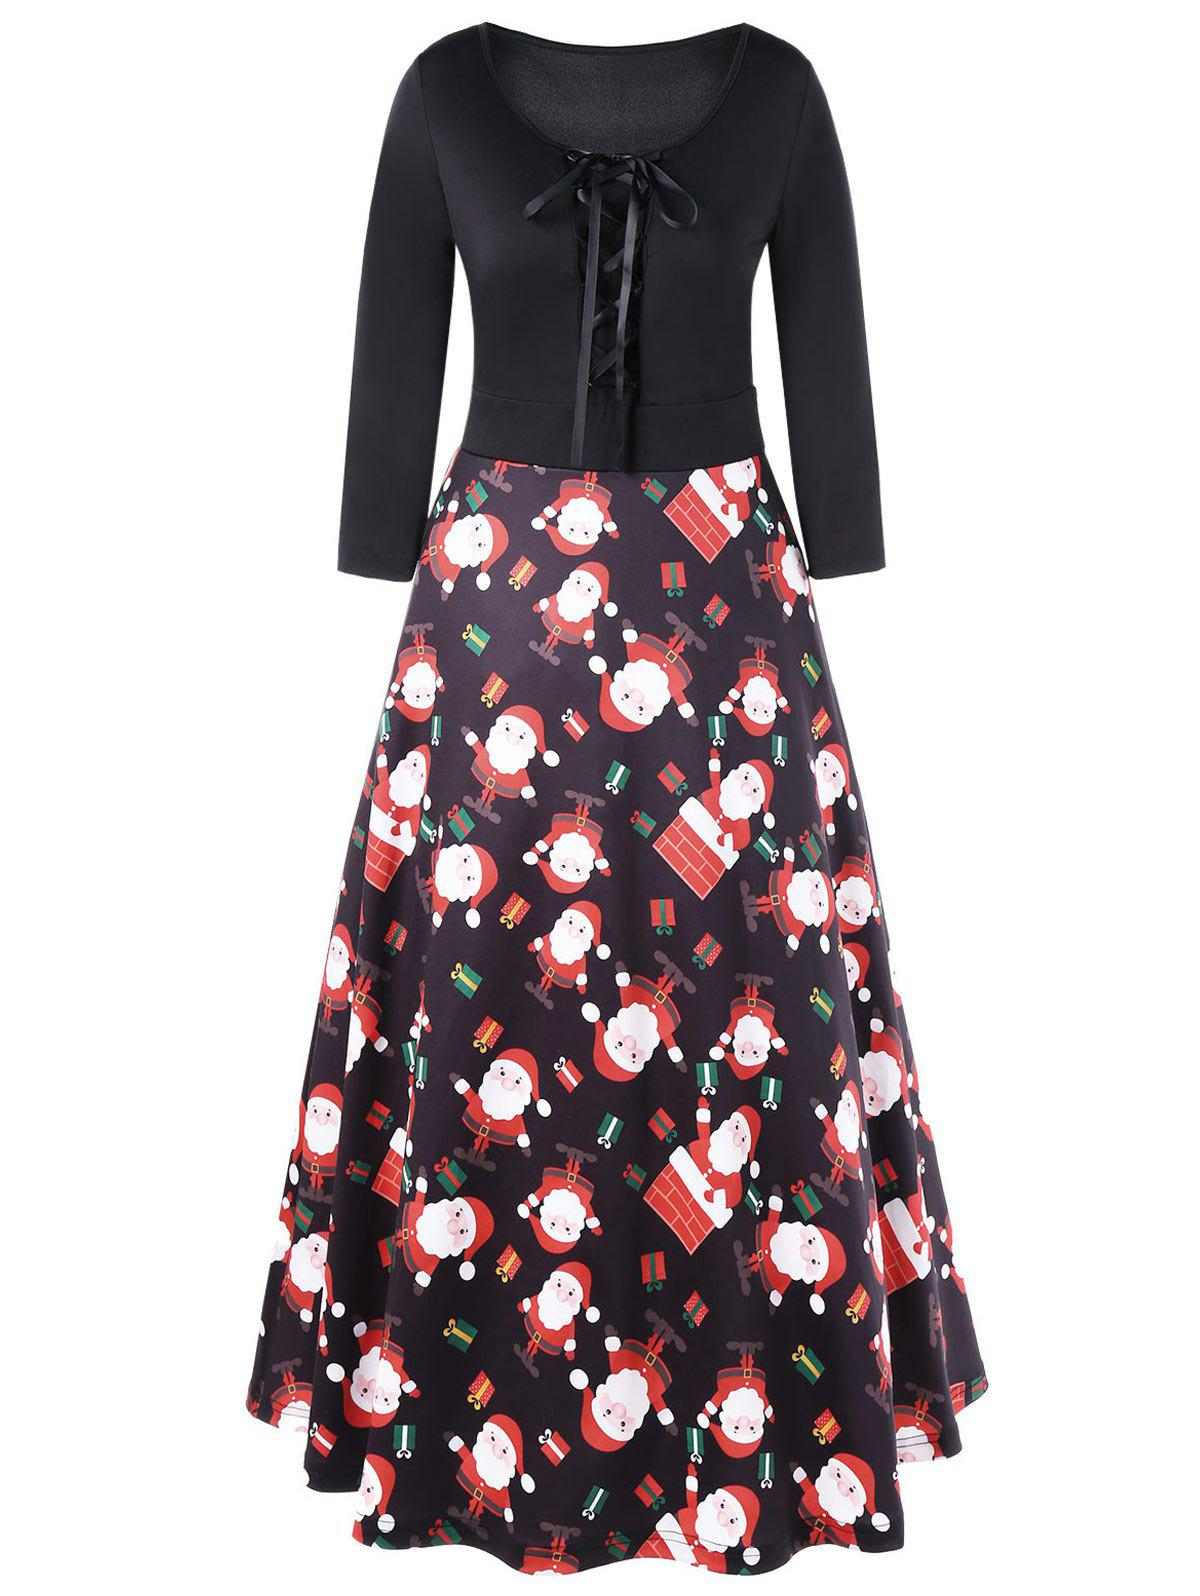 Christmas Lace Up Midi Swing DressWOMEN<br><br>Size: XL; Color: BLACK; Style: Brief; Material: Polyester,Spandex; Silhouette: A-Line; Dresses Length: Mid-Calf; Neckline: Scoop Neck; Sleeve Length: 3/4 Length Sleeves; Pattern Type: Others; With Belt: No; Season: Fall,Spring; Weight: 0.4500kg; Package Contents: 1 x Dress;